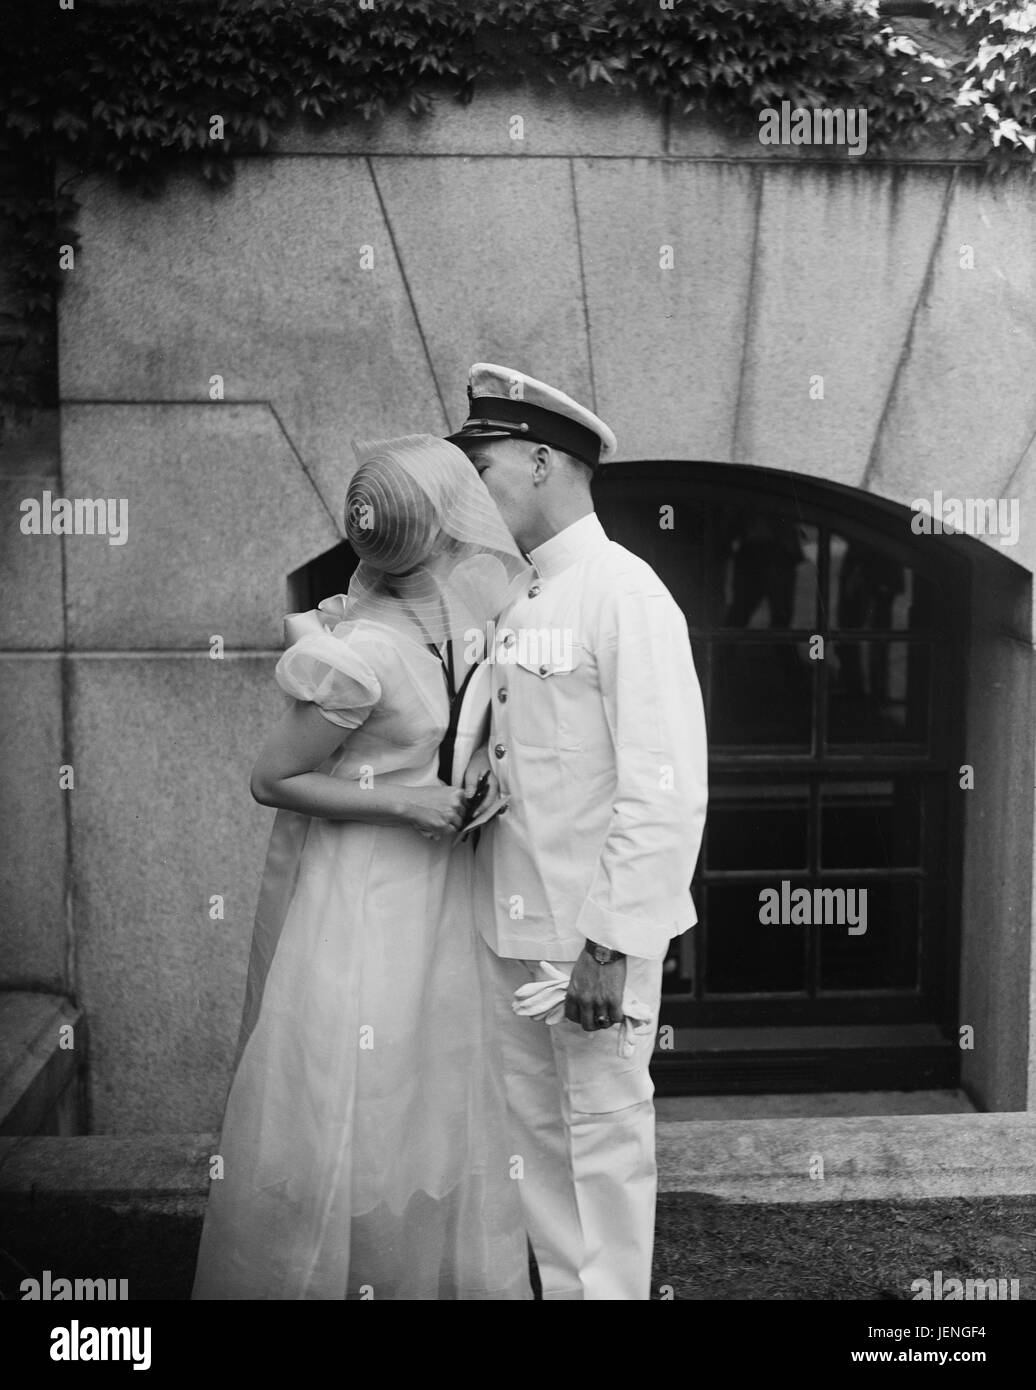 Naval Couple Kissing, U.S. Naval Academy, Annapolis, Maryland, USA, Harris & Ewing, May 1930 - Stock Image